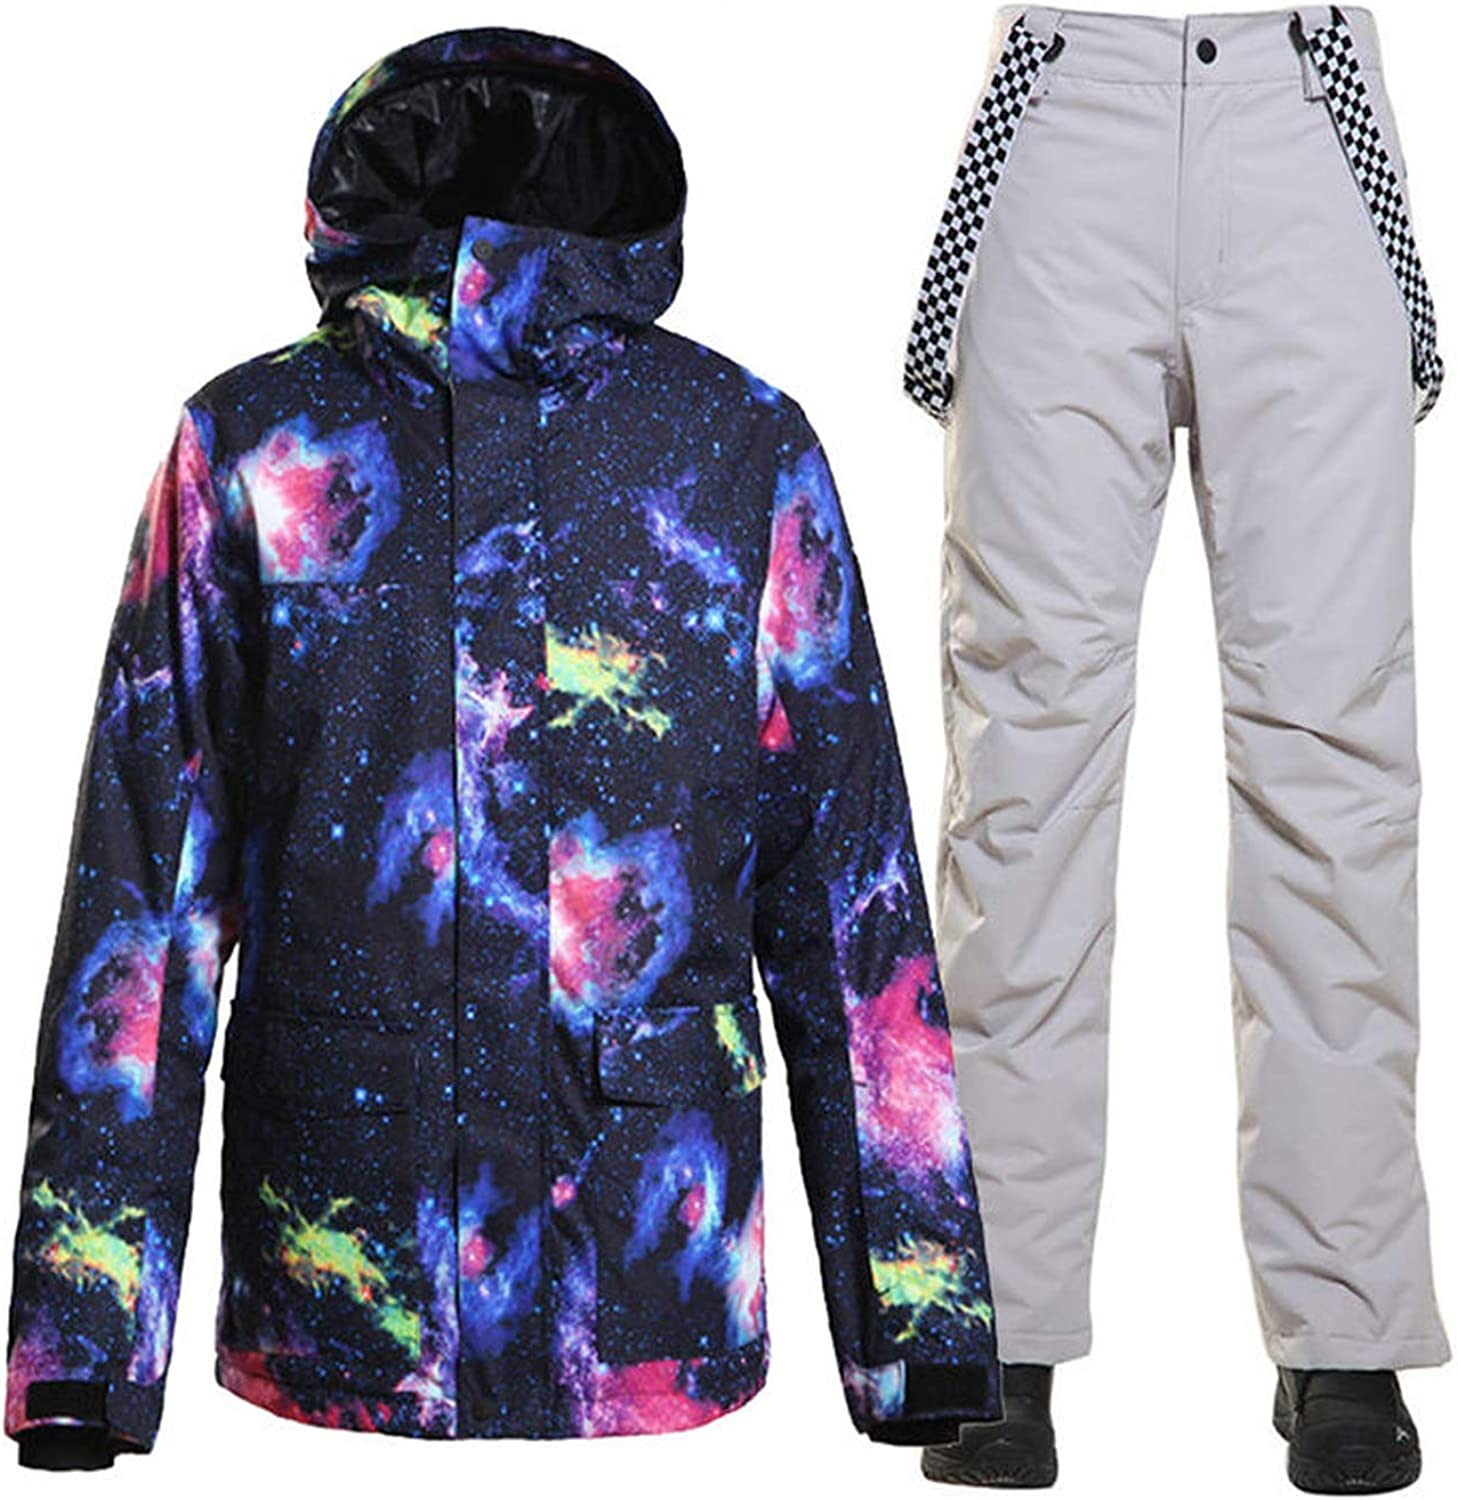 Mens Snow Suit Outdoor Sports wear Snowboarding Sets Waterproof Windproof Breathable Ski Jacket and Belt Snow Pant,Picture Jacket,S